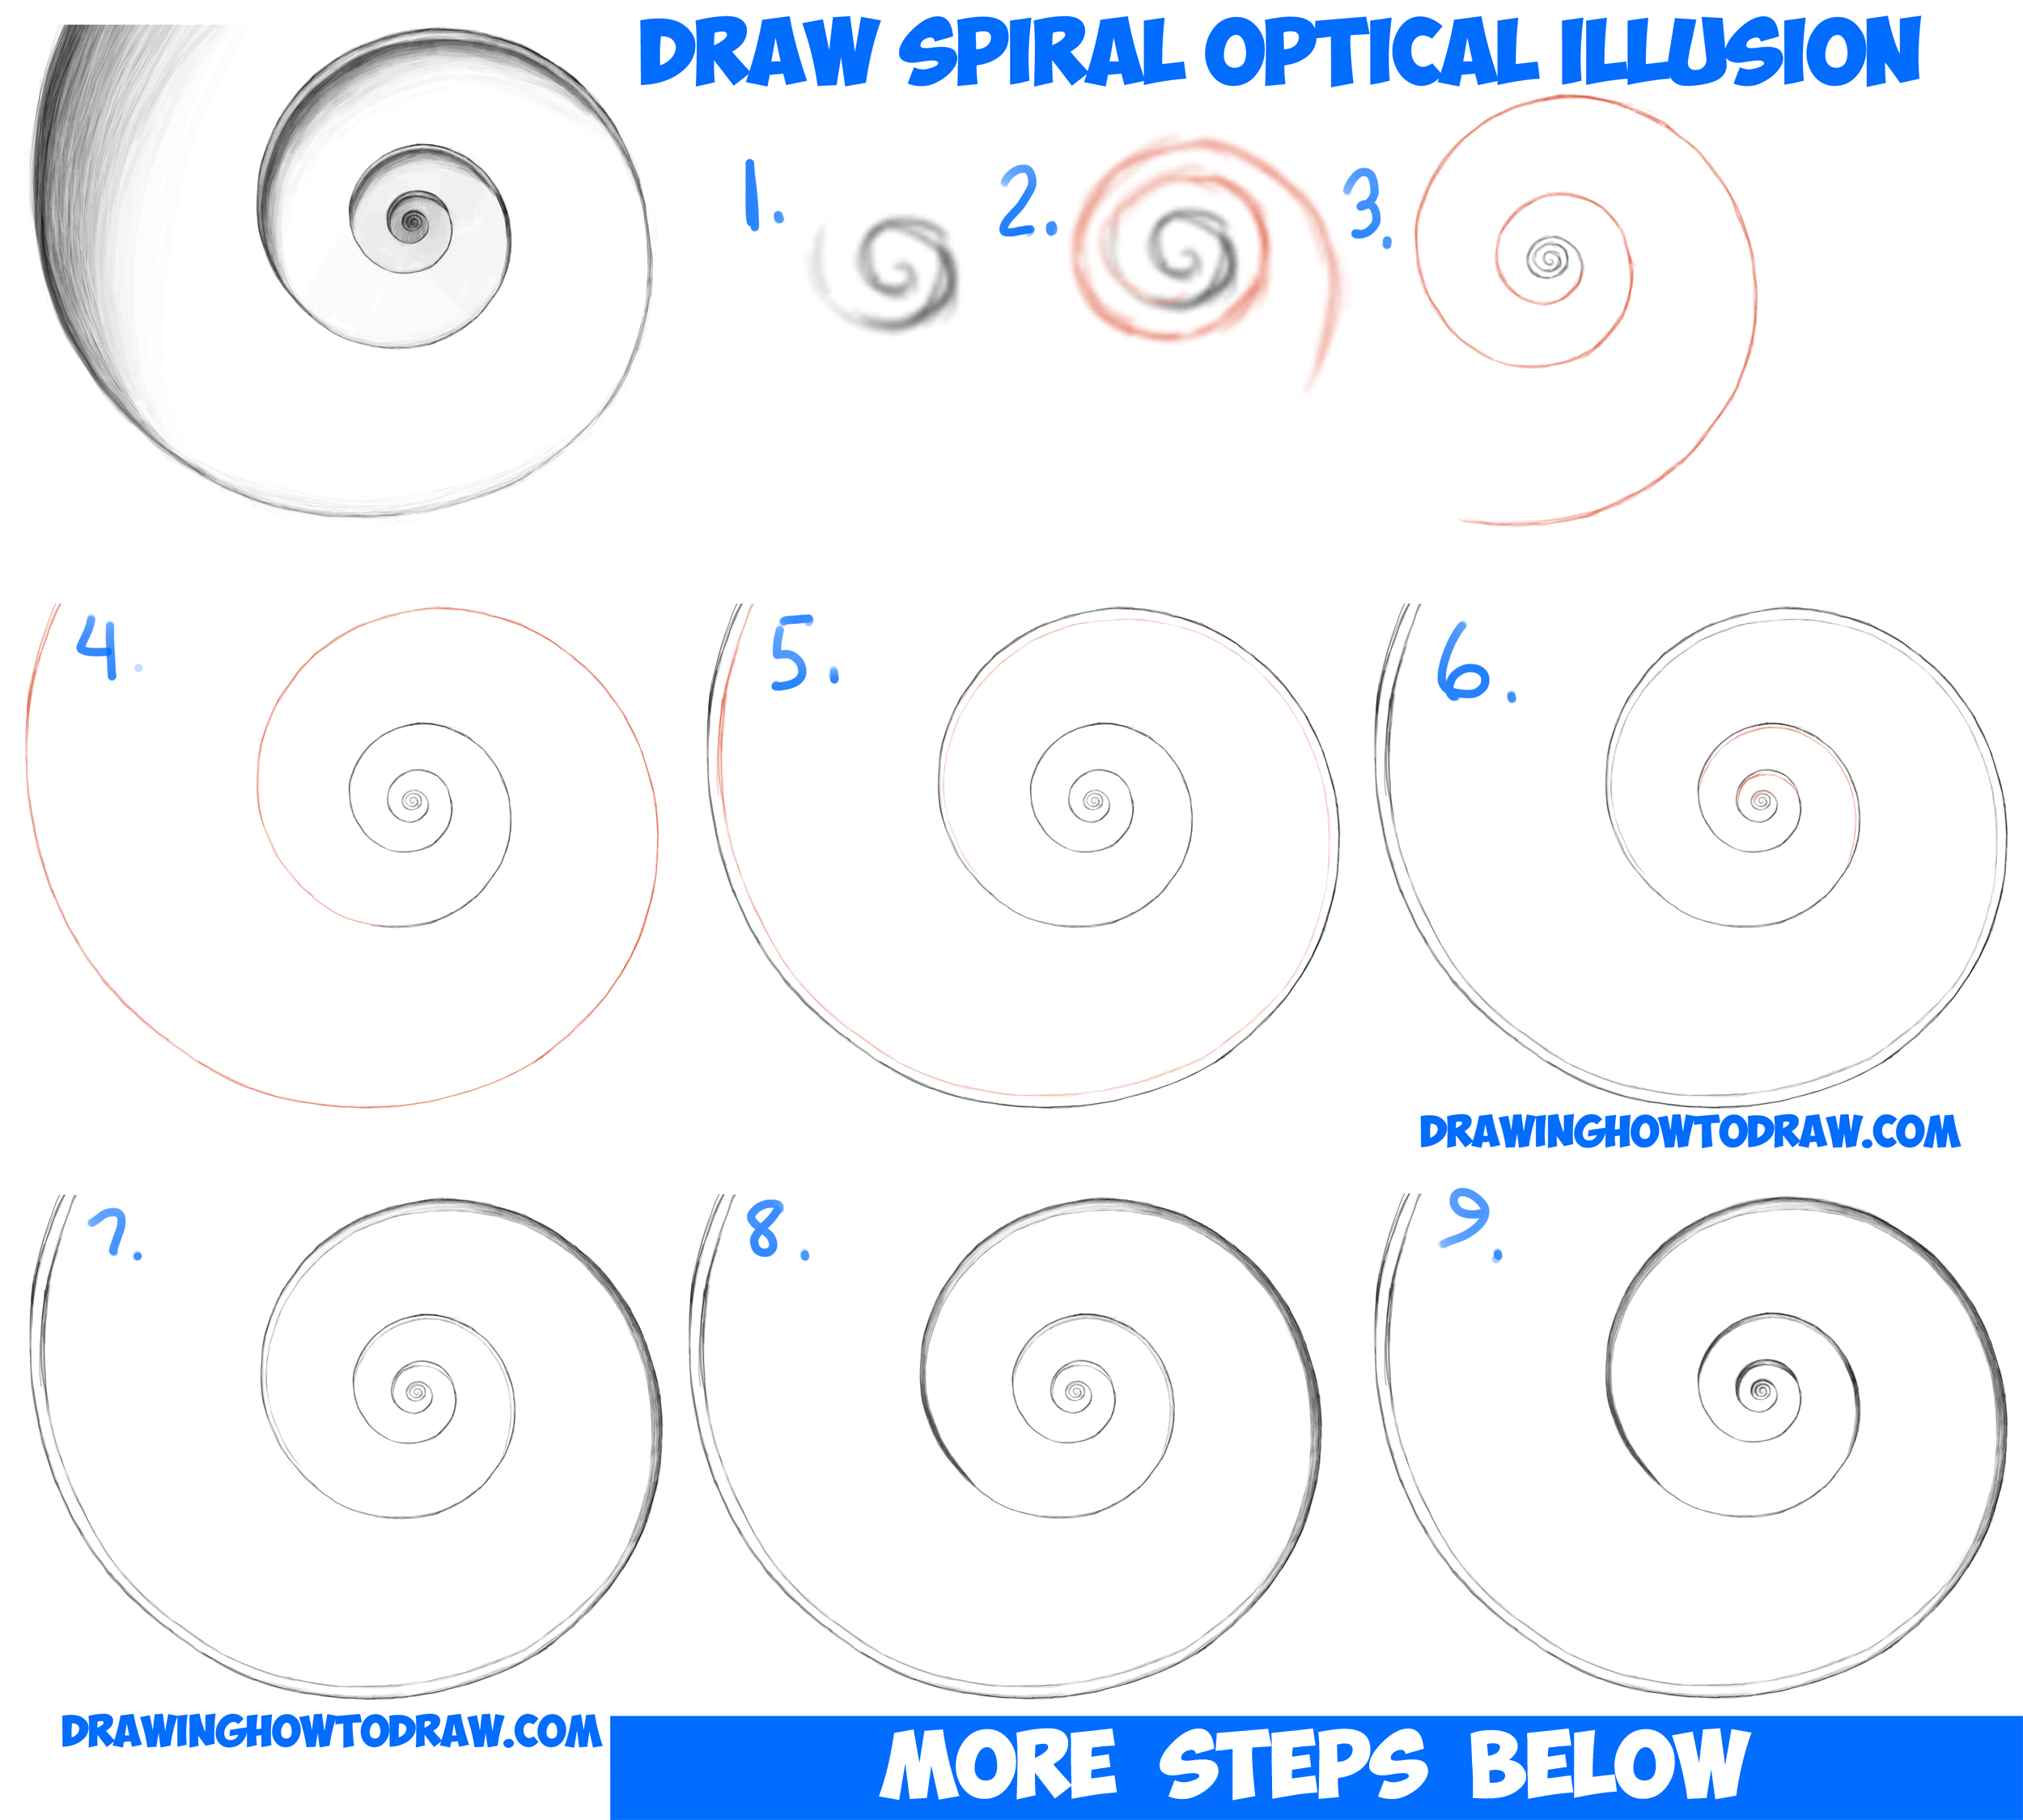 How to Draw Spiral Going Down Optical Illusion Easy Step by Step Drawing Tutorial for Beginners